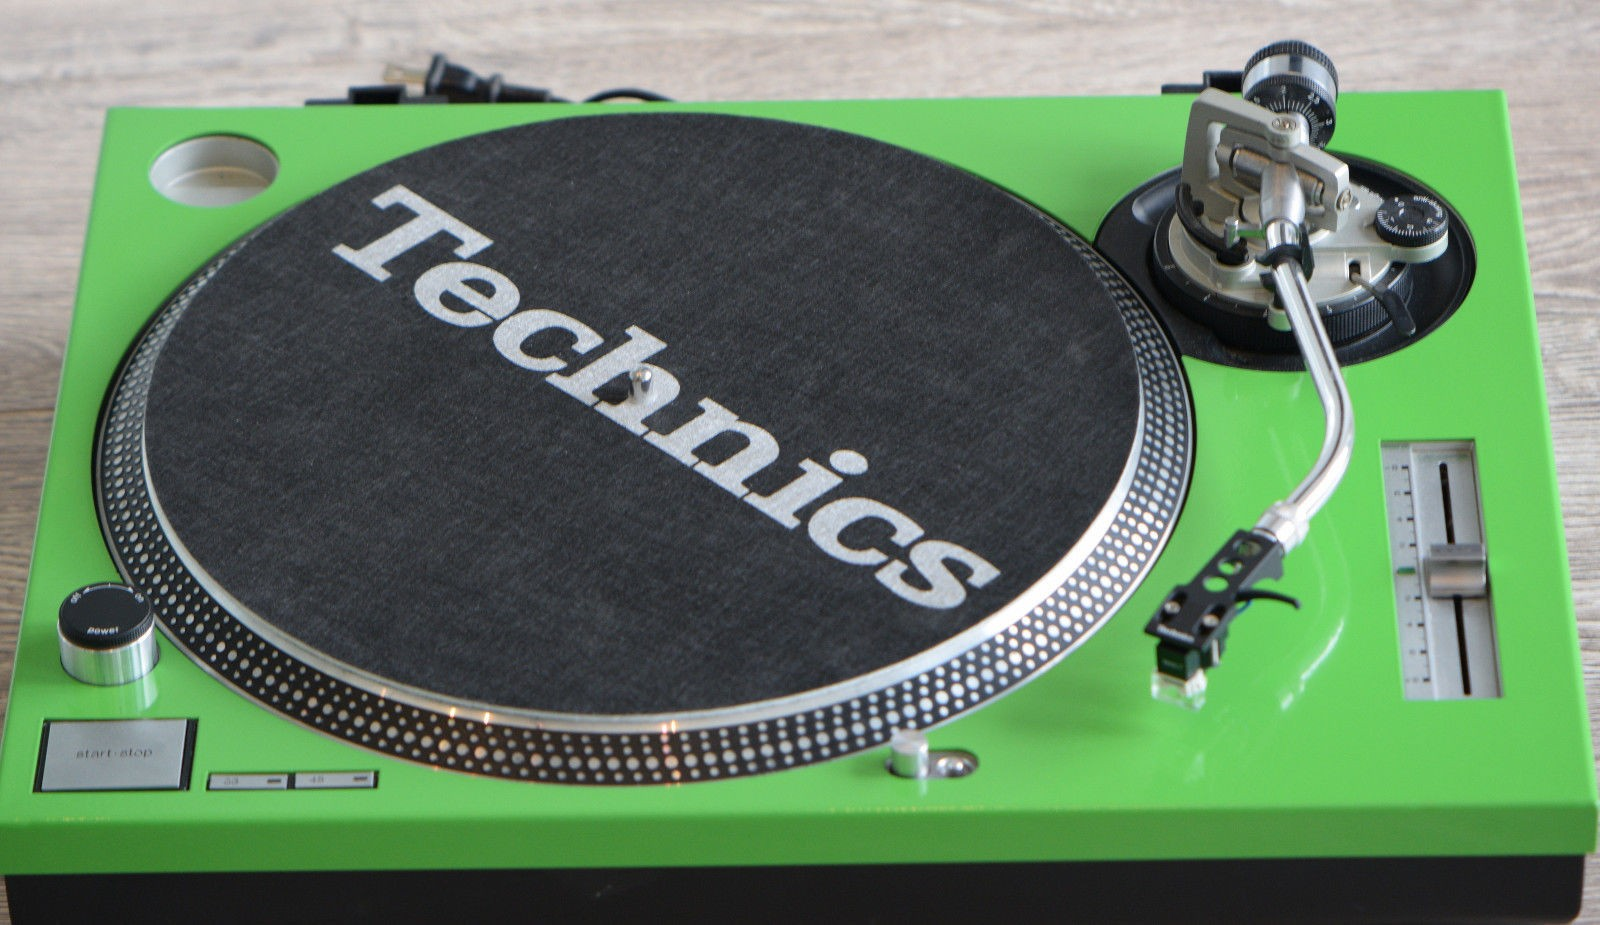 Technics Face Plate For SL1200/1210MK2 Green